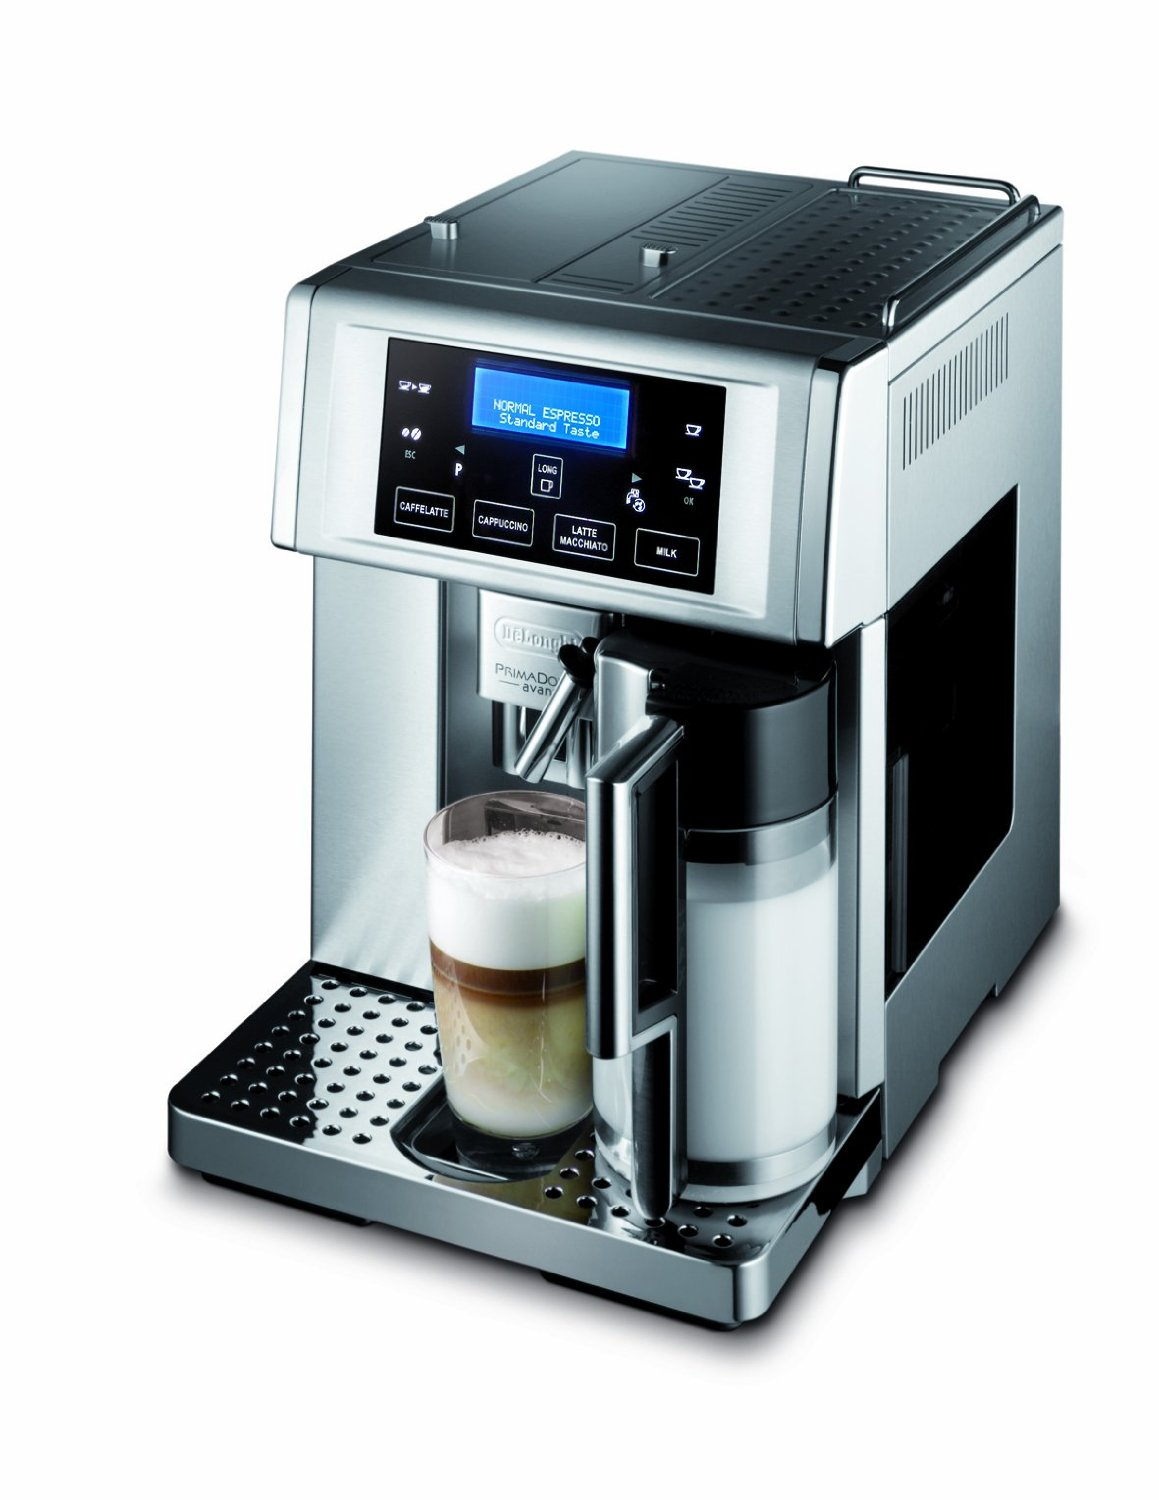 delonghi esam6700 gran dama avant touchscreen espresso machine view on amazon - Delonghi Espresso Machine